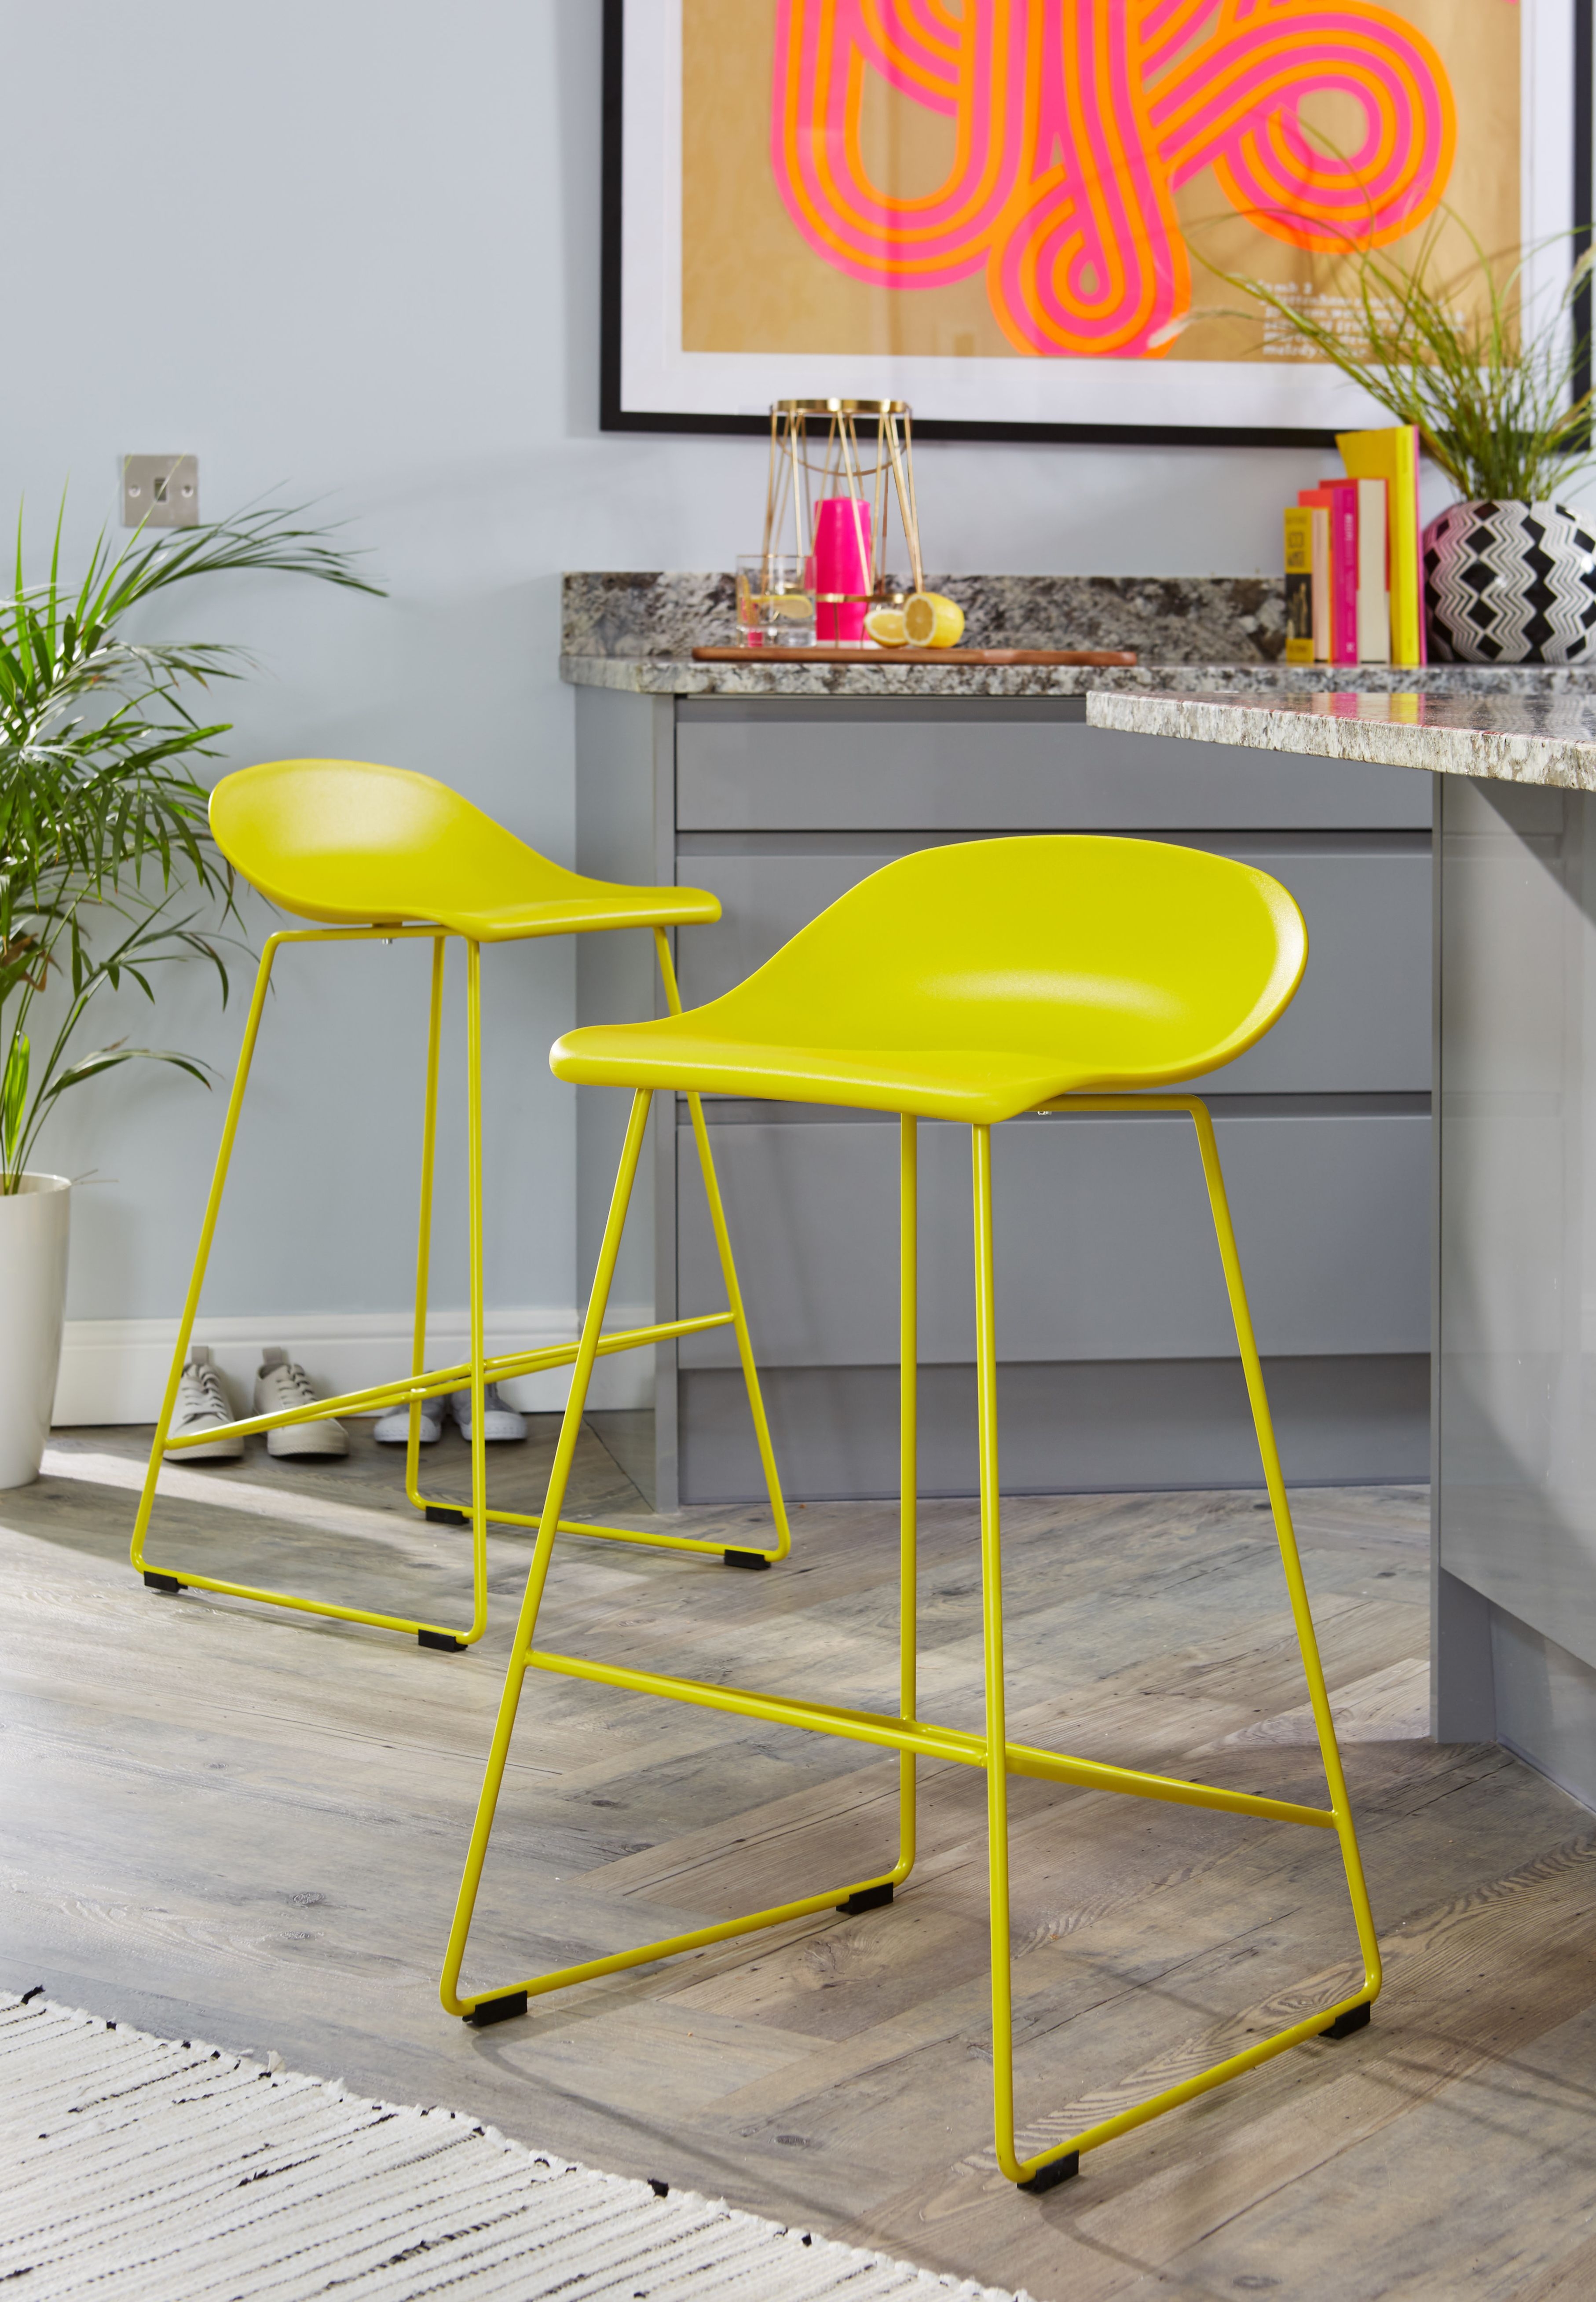 Luna Bar Stool Bar Stools Colorful Bar Stools Upholstery Fabric For Chairs